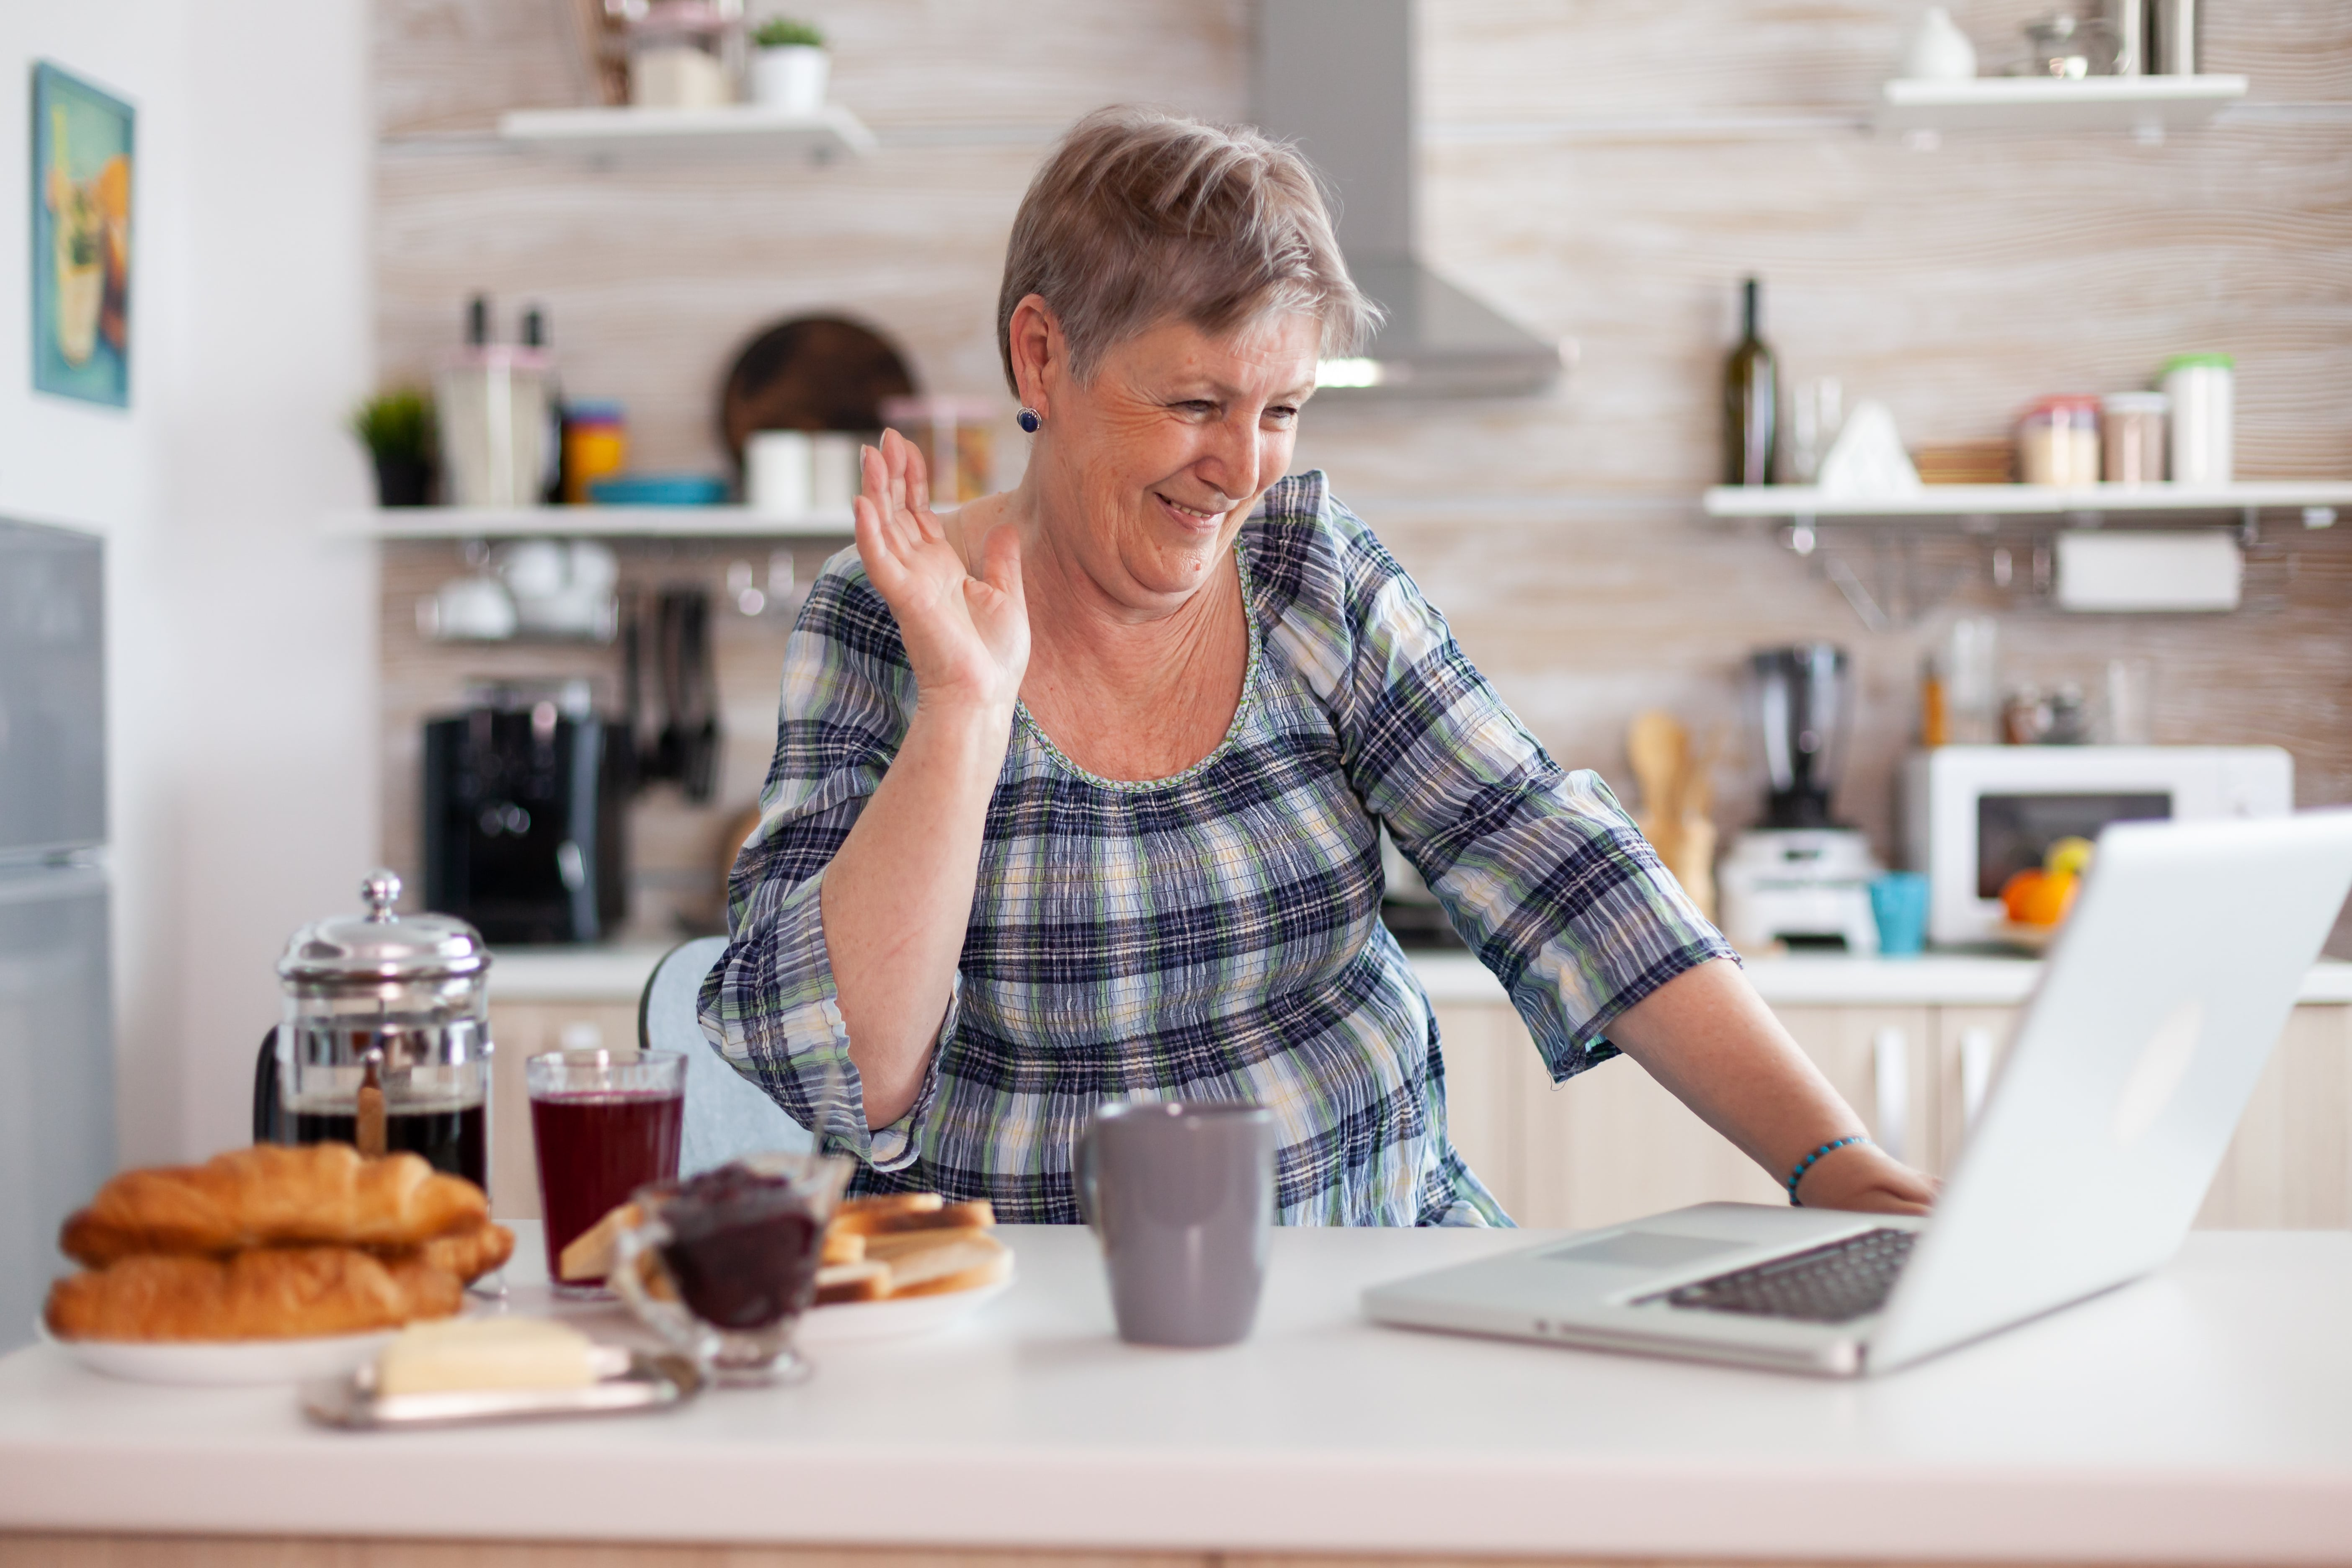 A woman waves at the camera on her laptop